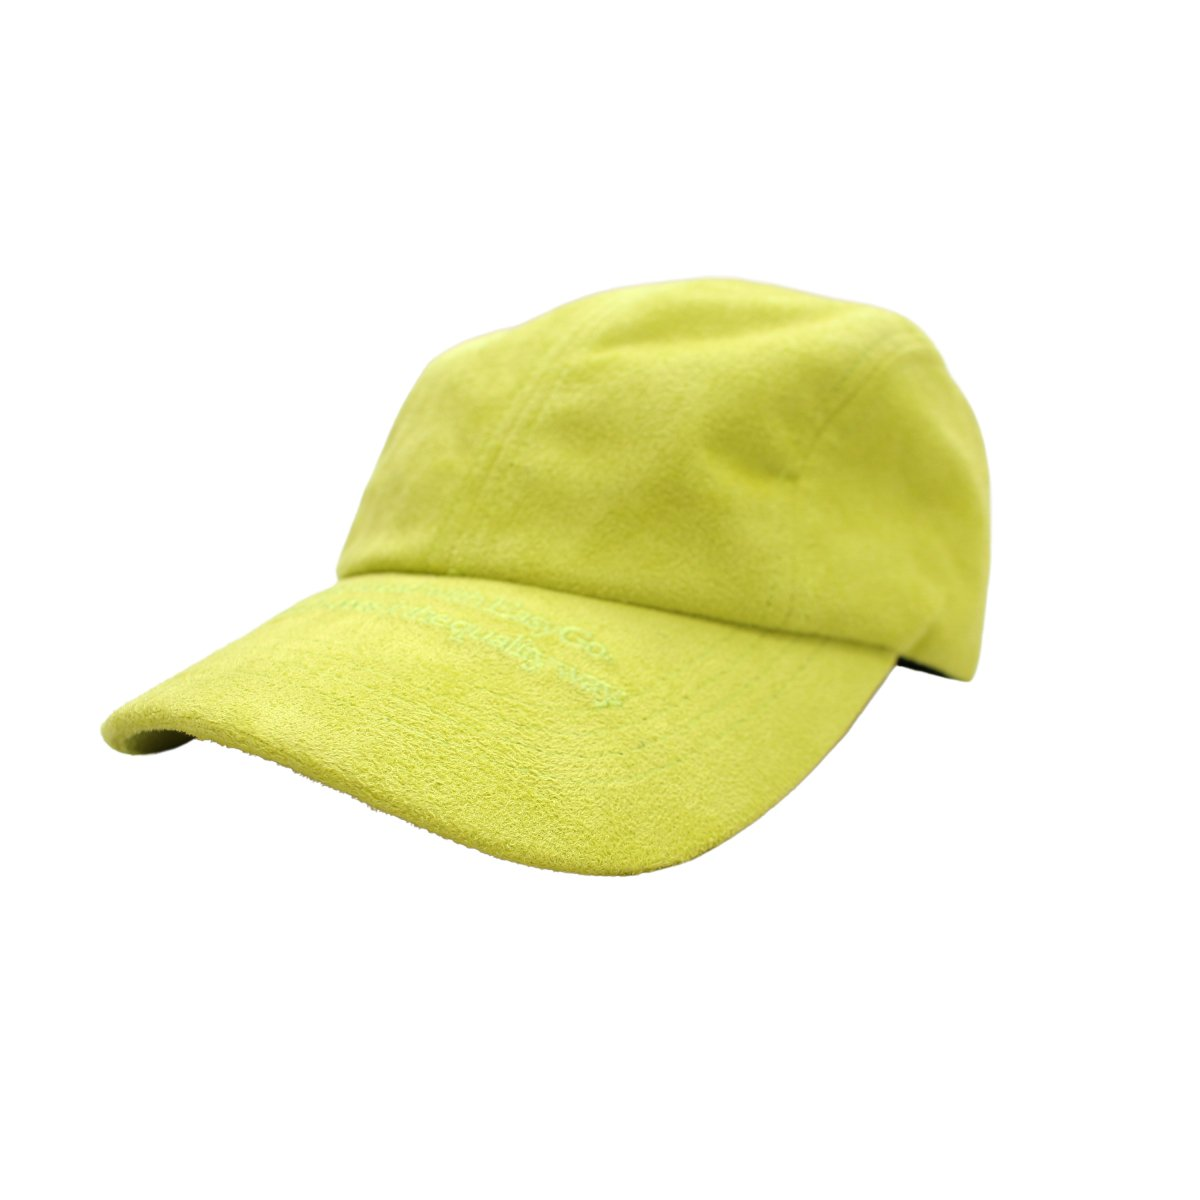 Yellow suade hat